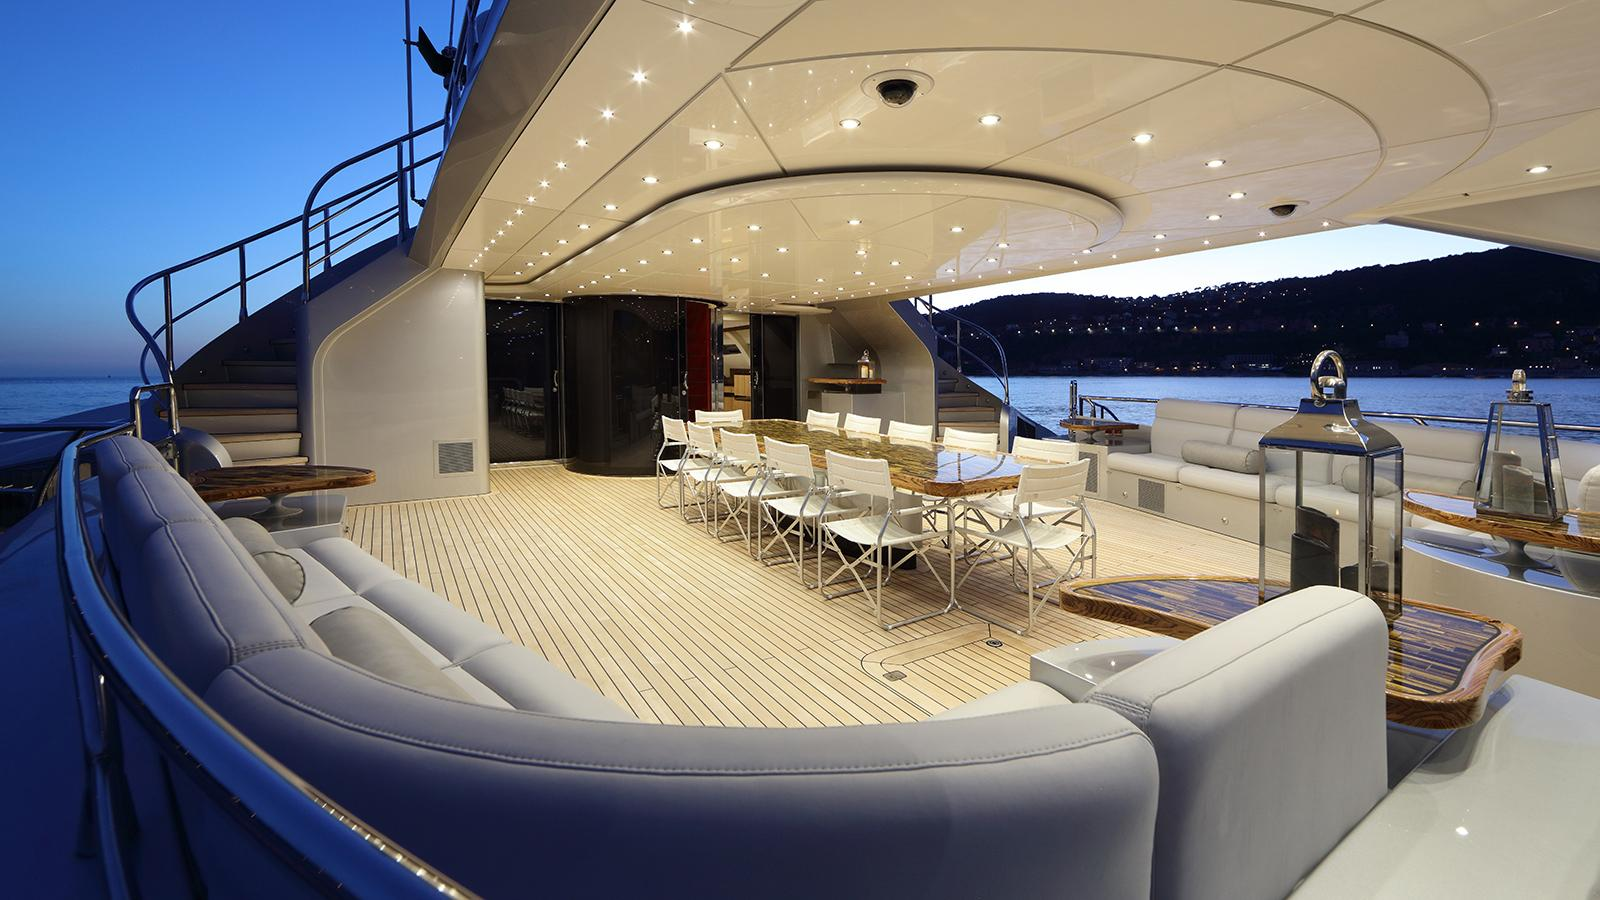 galaxy of happiness trimaran yacht latitude 2016 53m aft deck